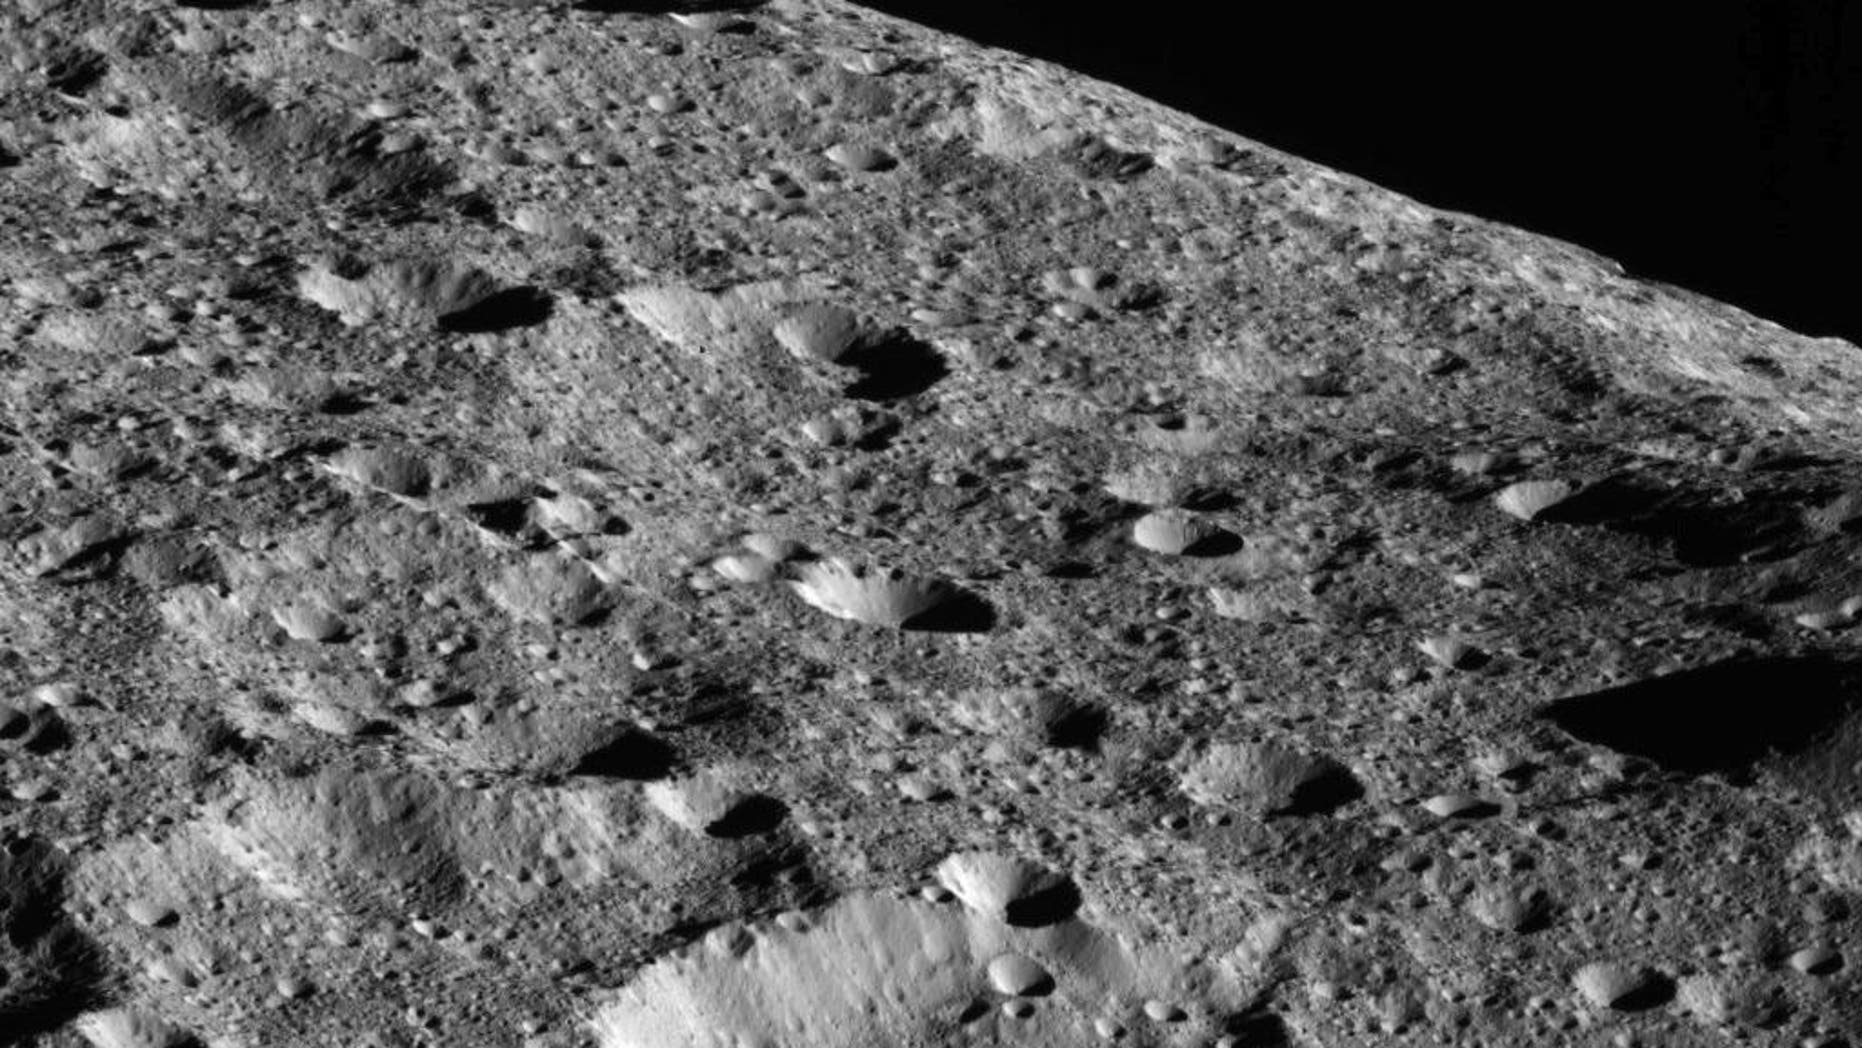 NASA's Dawn spacecraft captured this photo of Ceres on May 16, 2018, as it approached its lowest orbit ever of the dwarf planet in the asteroid belt. At the time of this photo, Dawn was about 270 miles (440 kilometers) from Ceres.